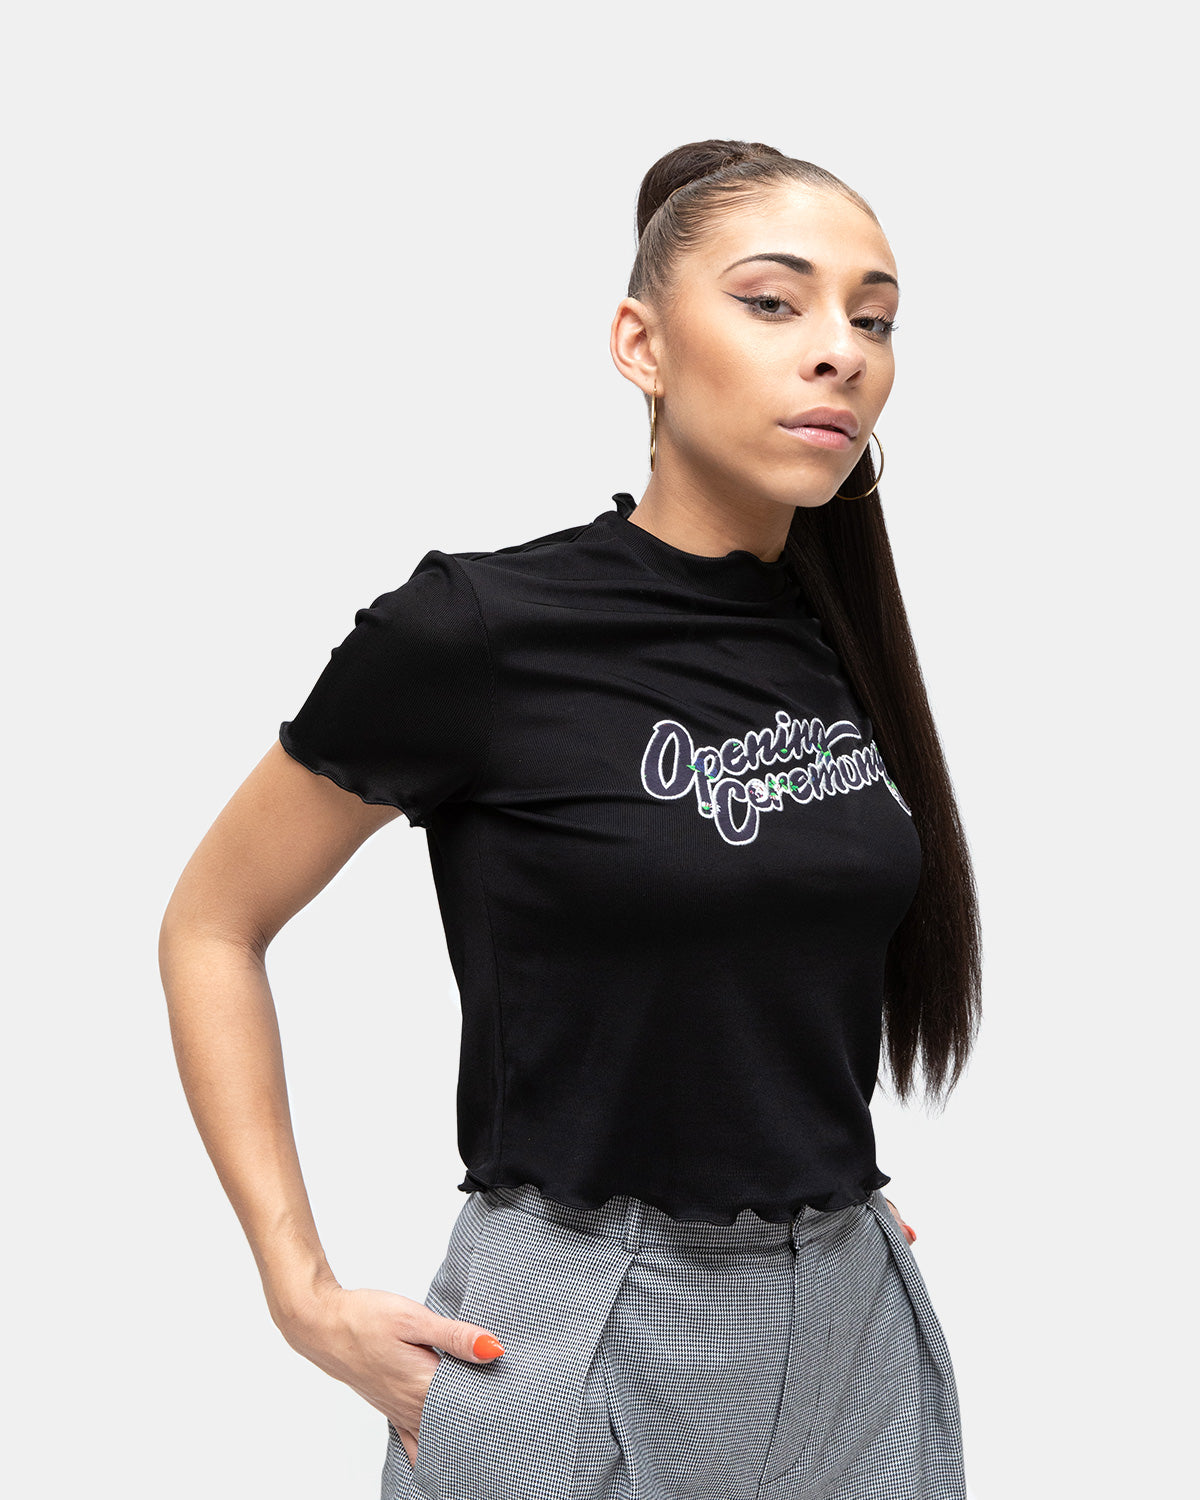 Opening Ceremony - Women's Fem Fit OC Lettuce Edge Tee (Black)